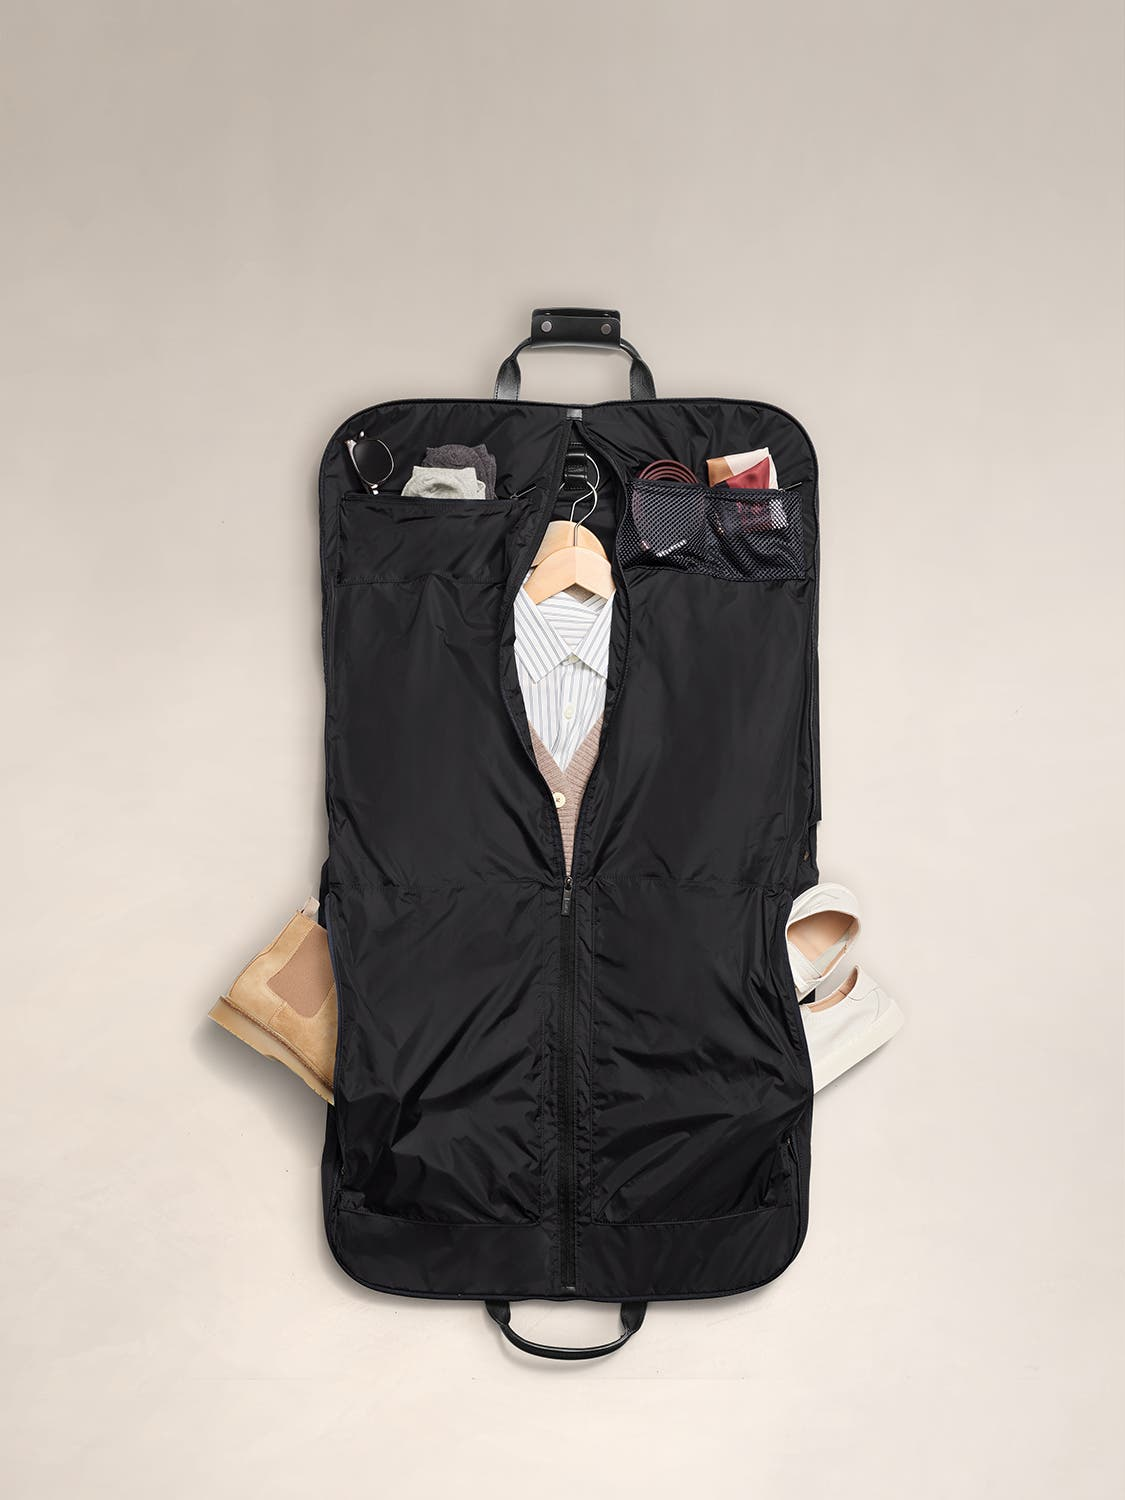 Black garment bag flat view with leather trim handles and shirt shown organized inside.